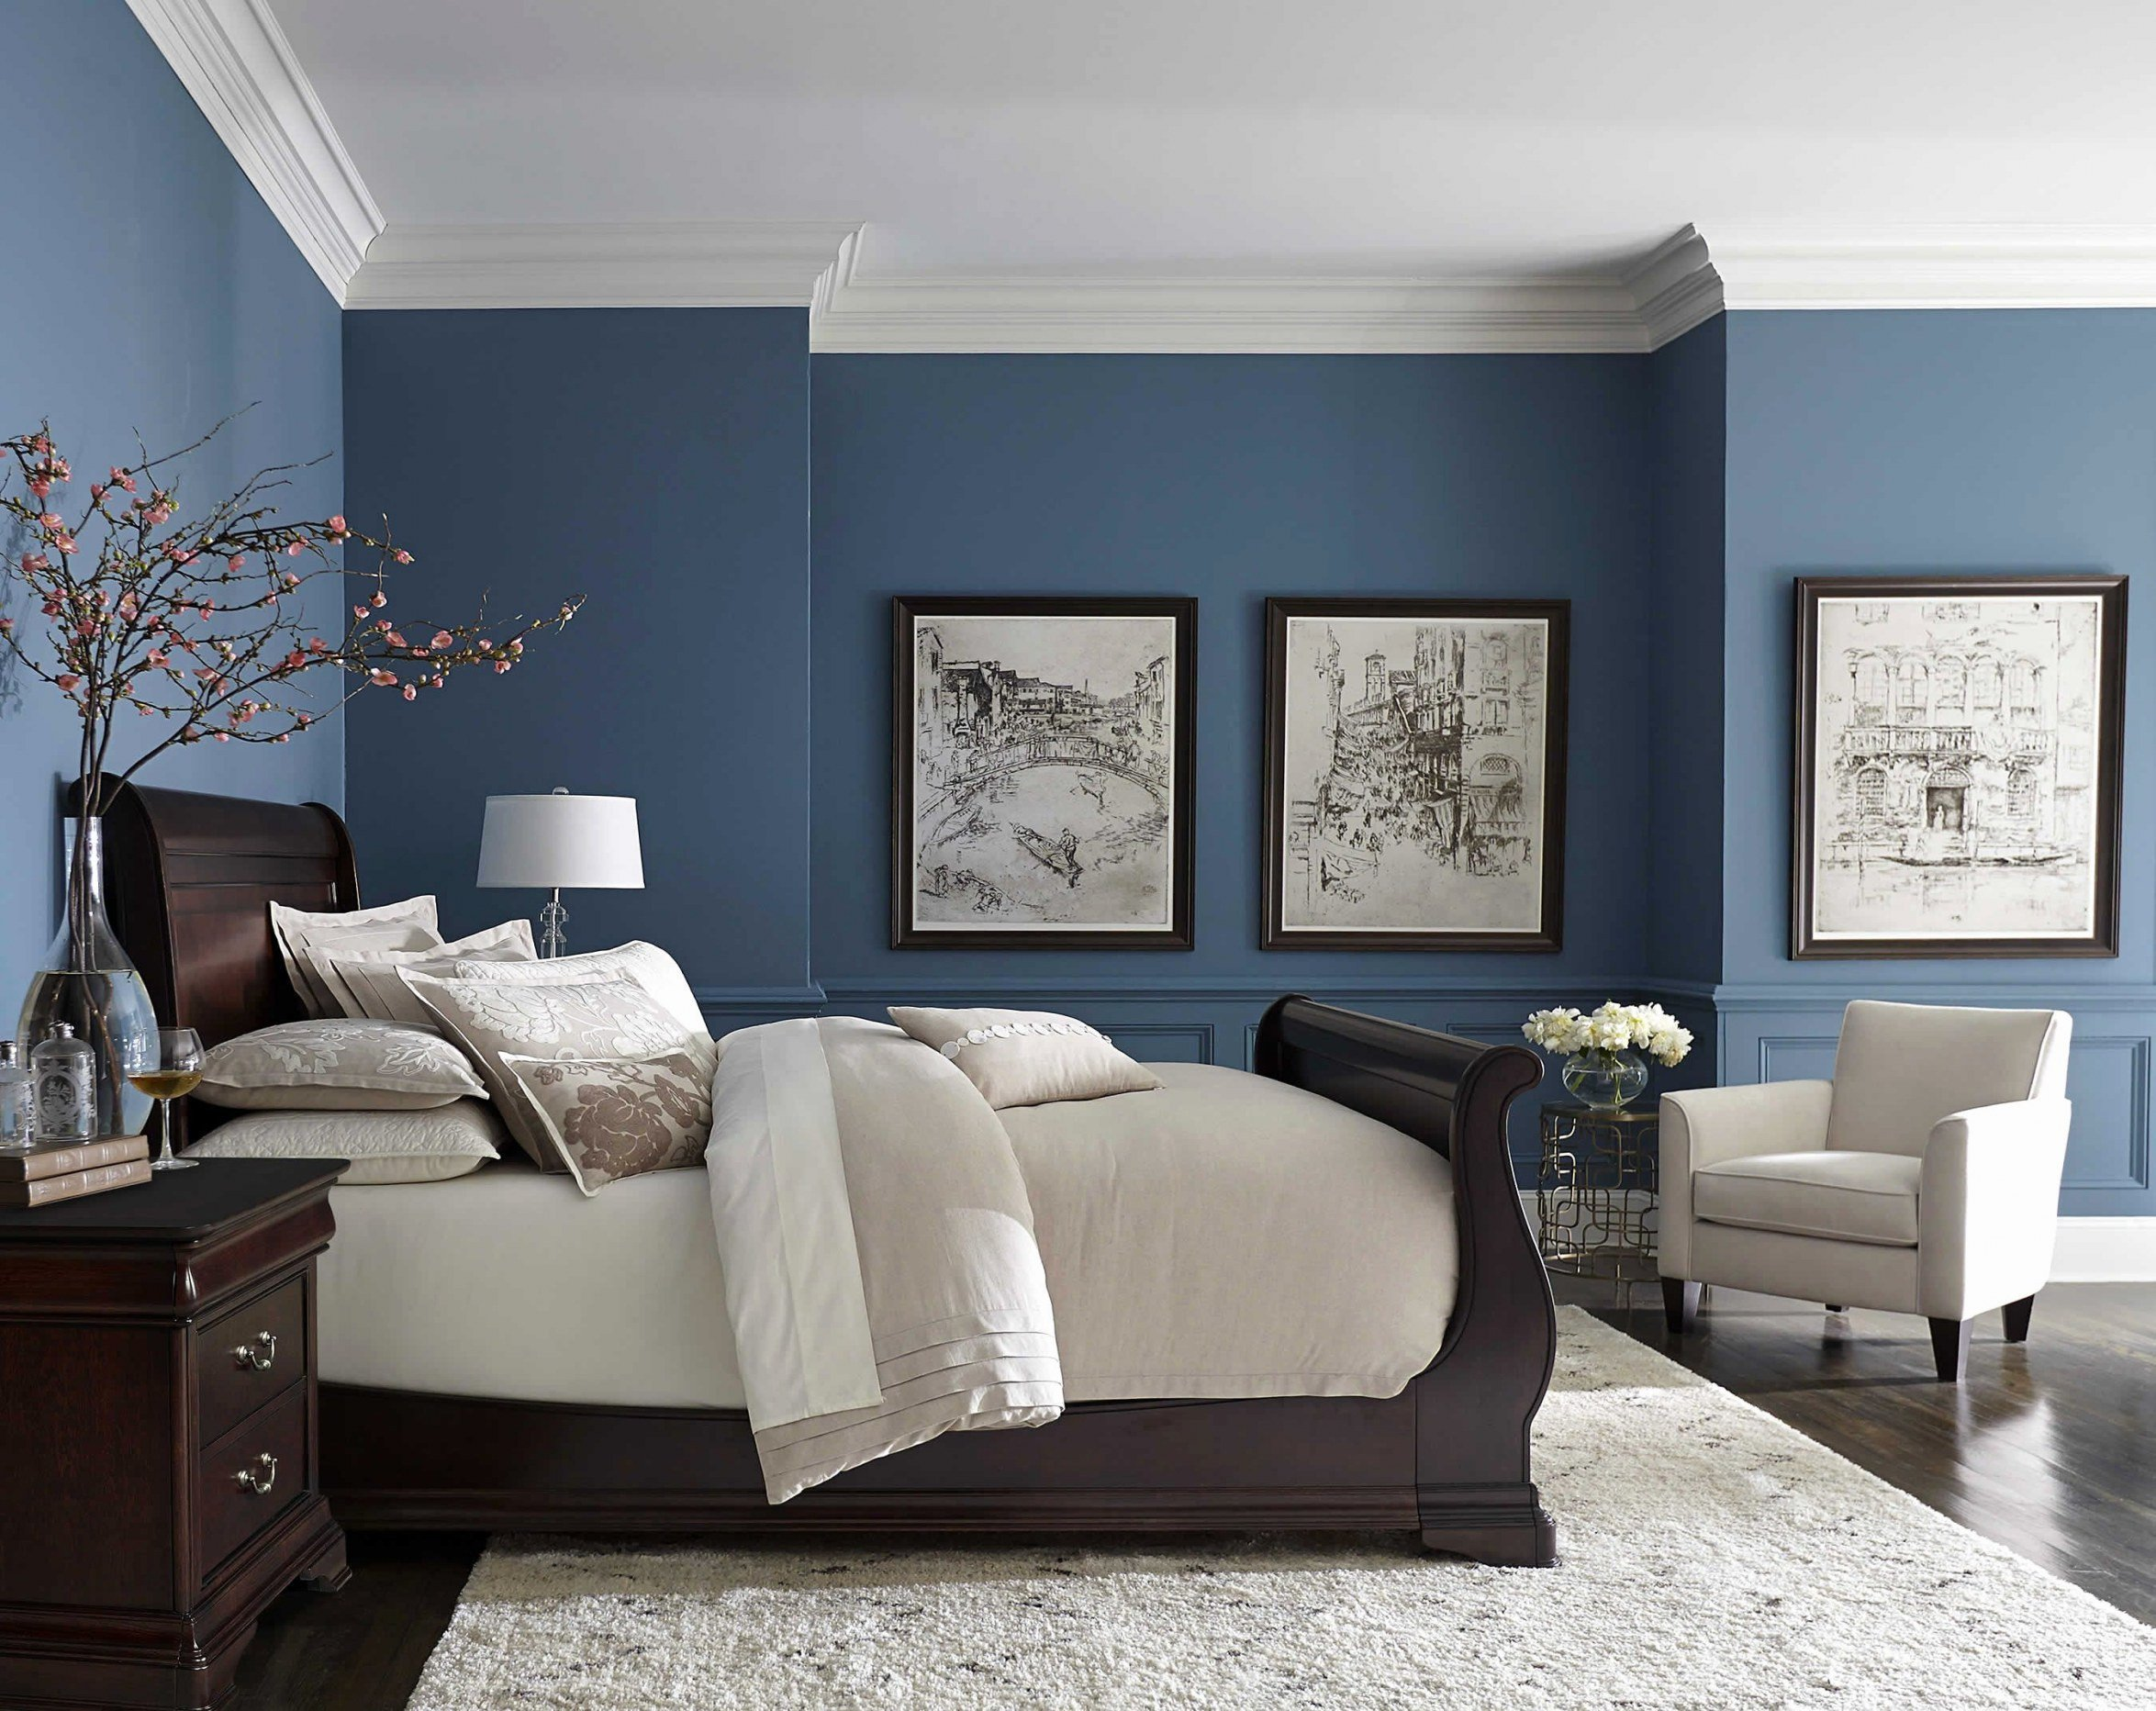 White and Gold Bedroom Set Fresh Gold Bedroom Walls Black and White Wall Decor Lovely Gold